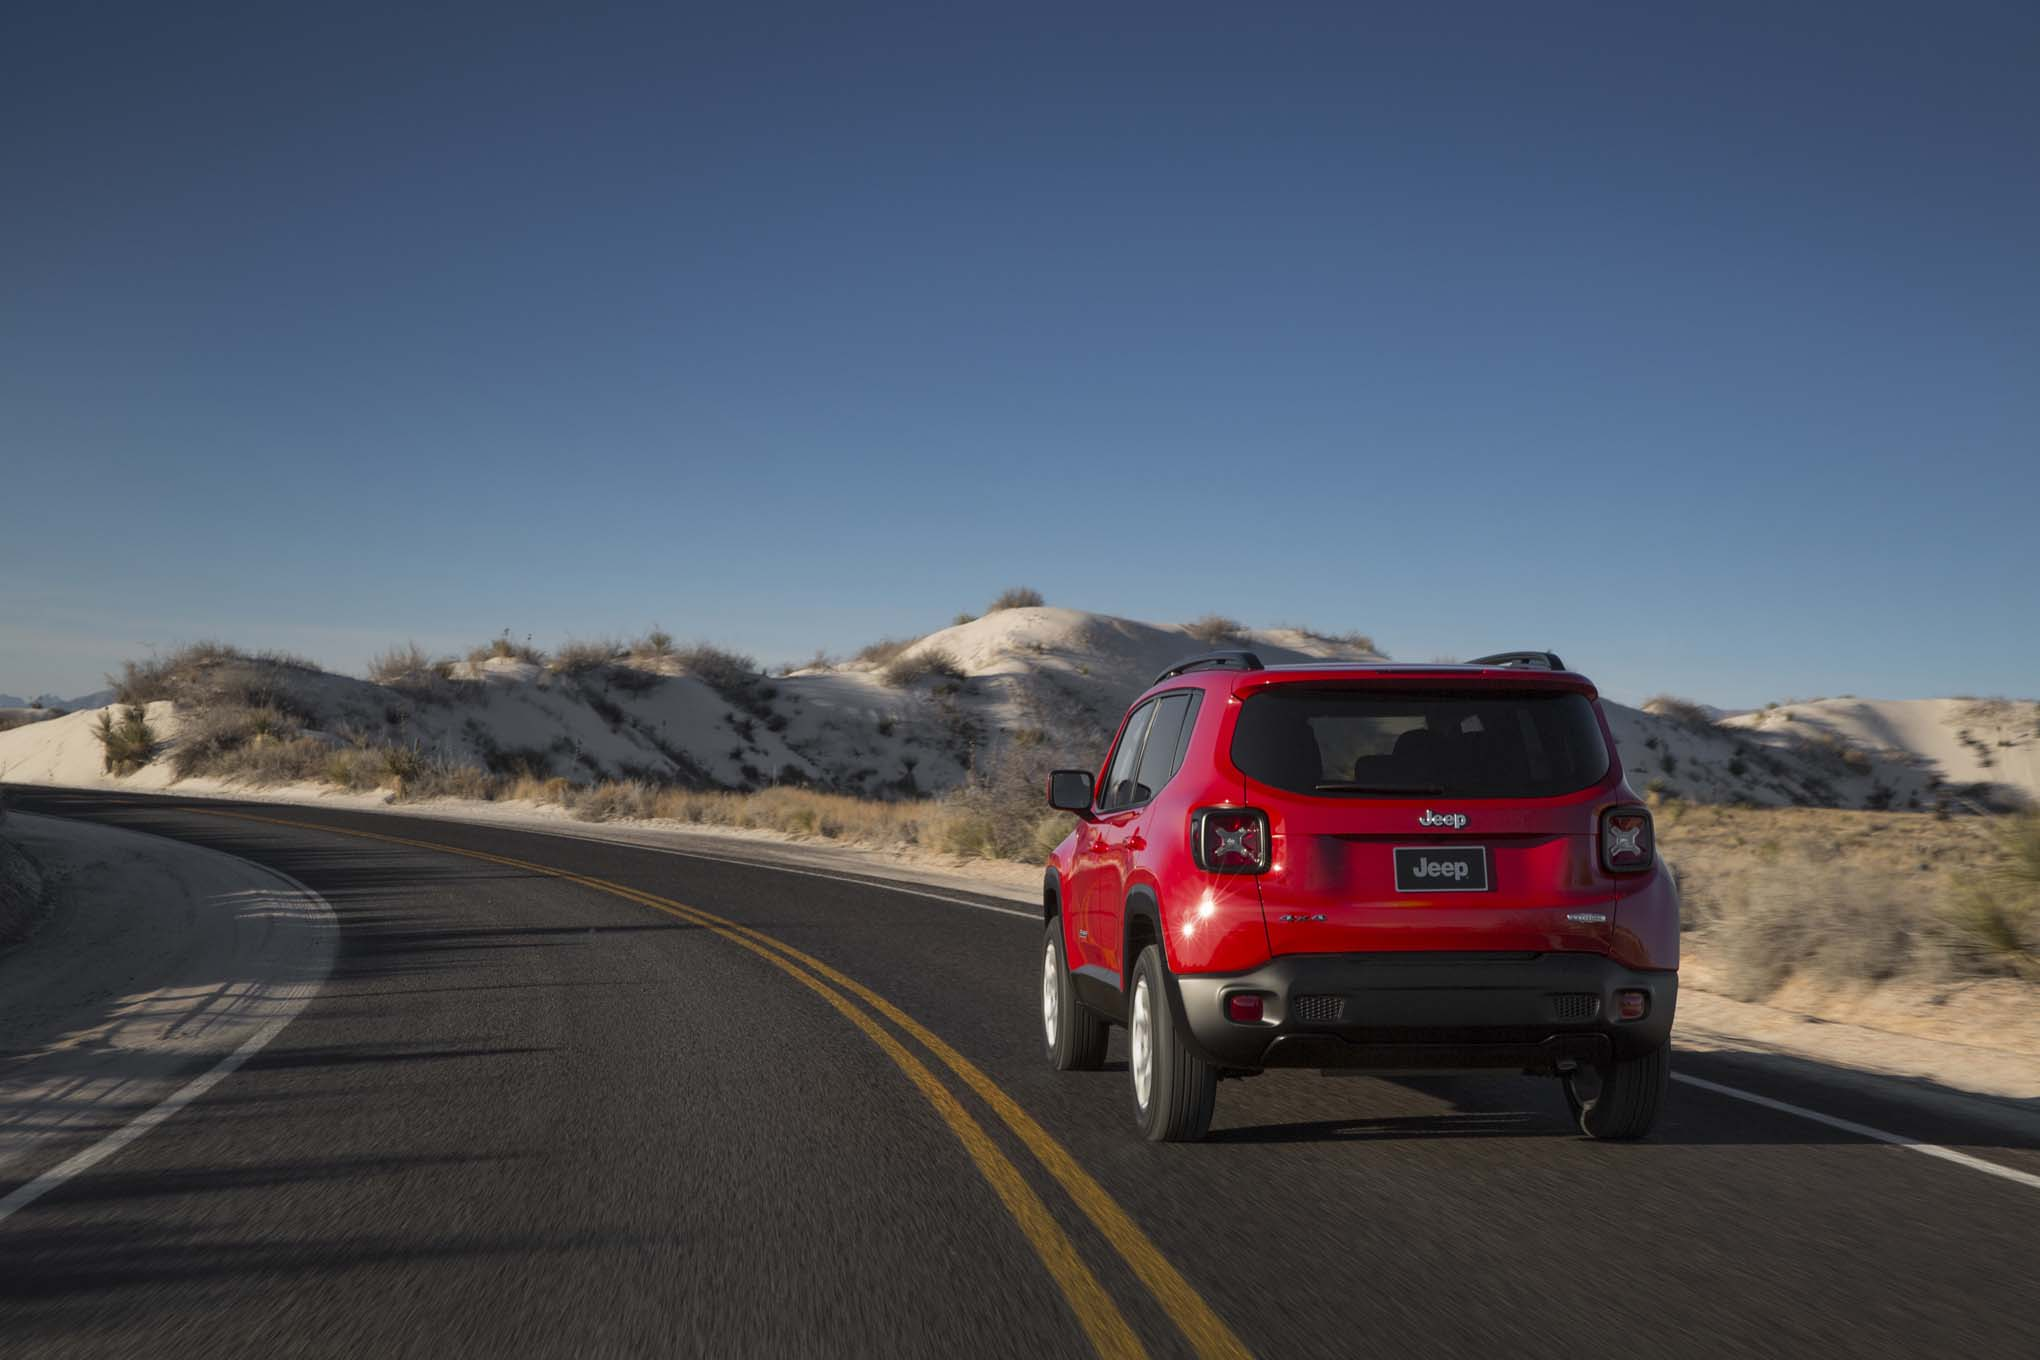 2015 Jeep Renegade Latitude rear three quarter turn